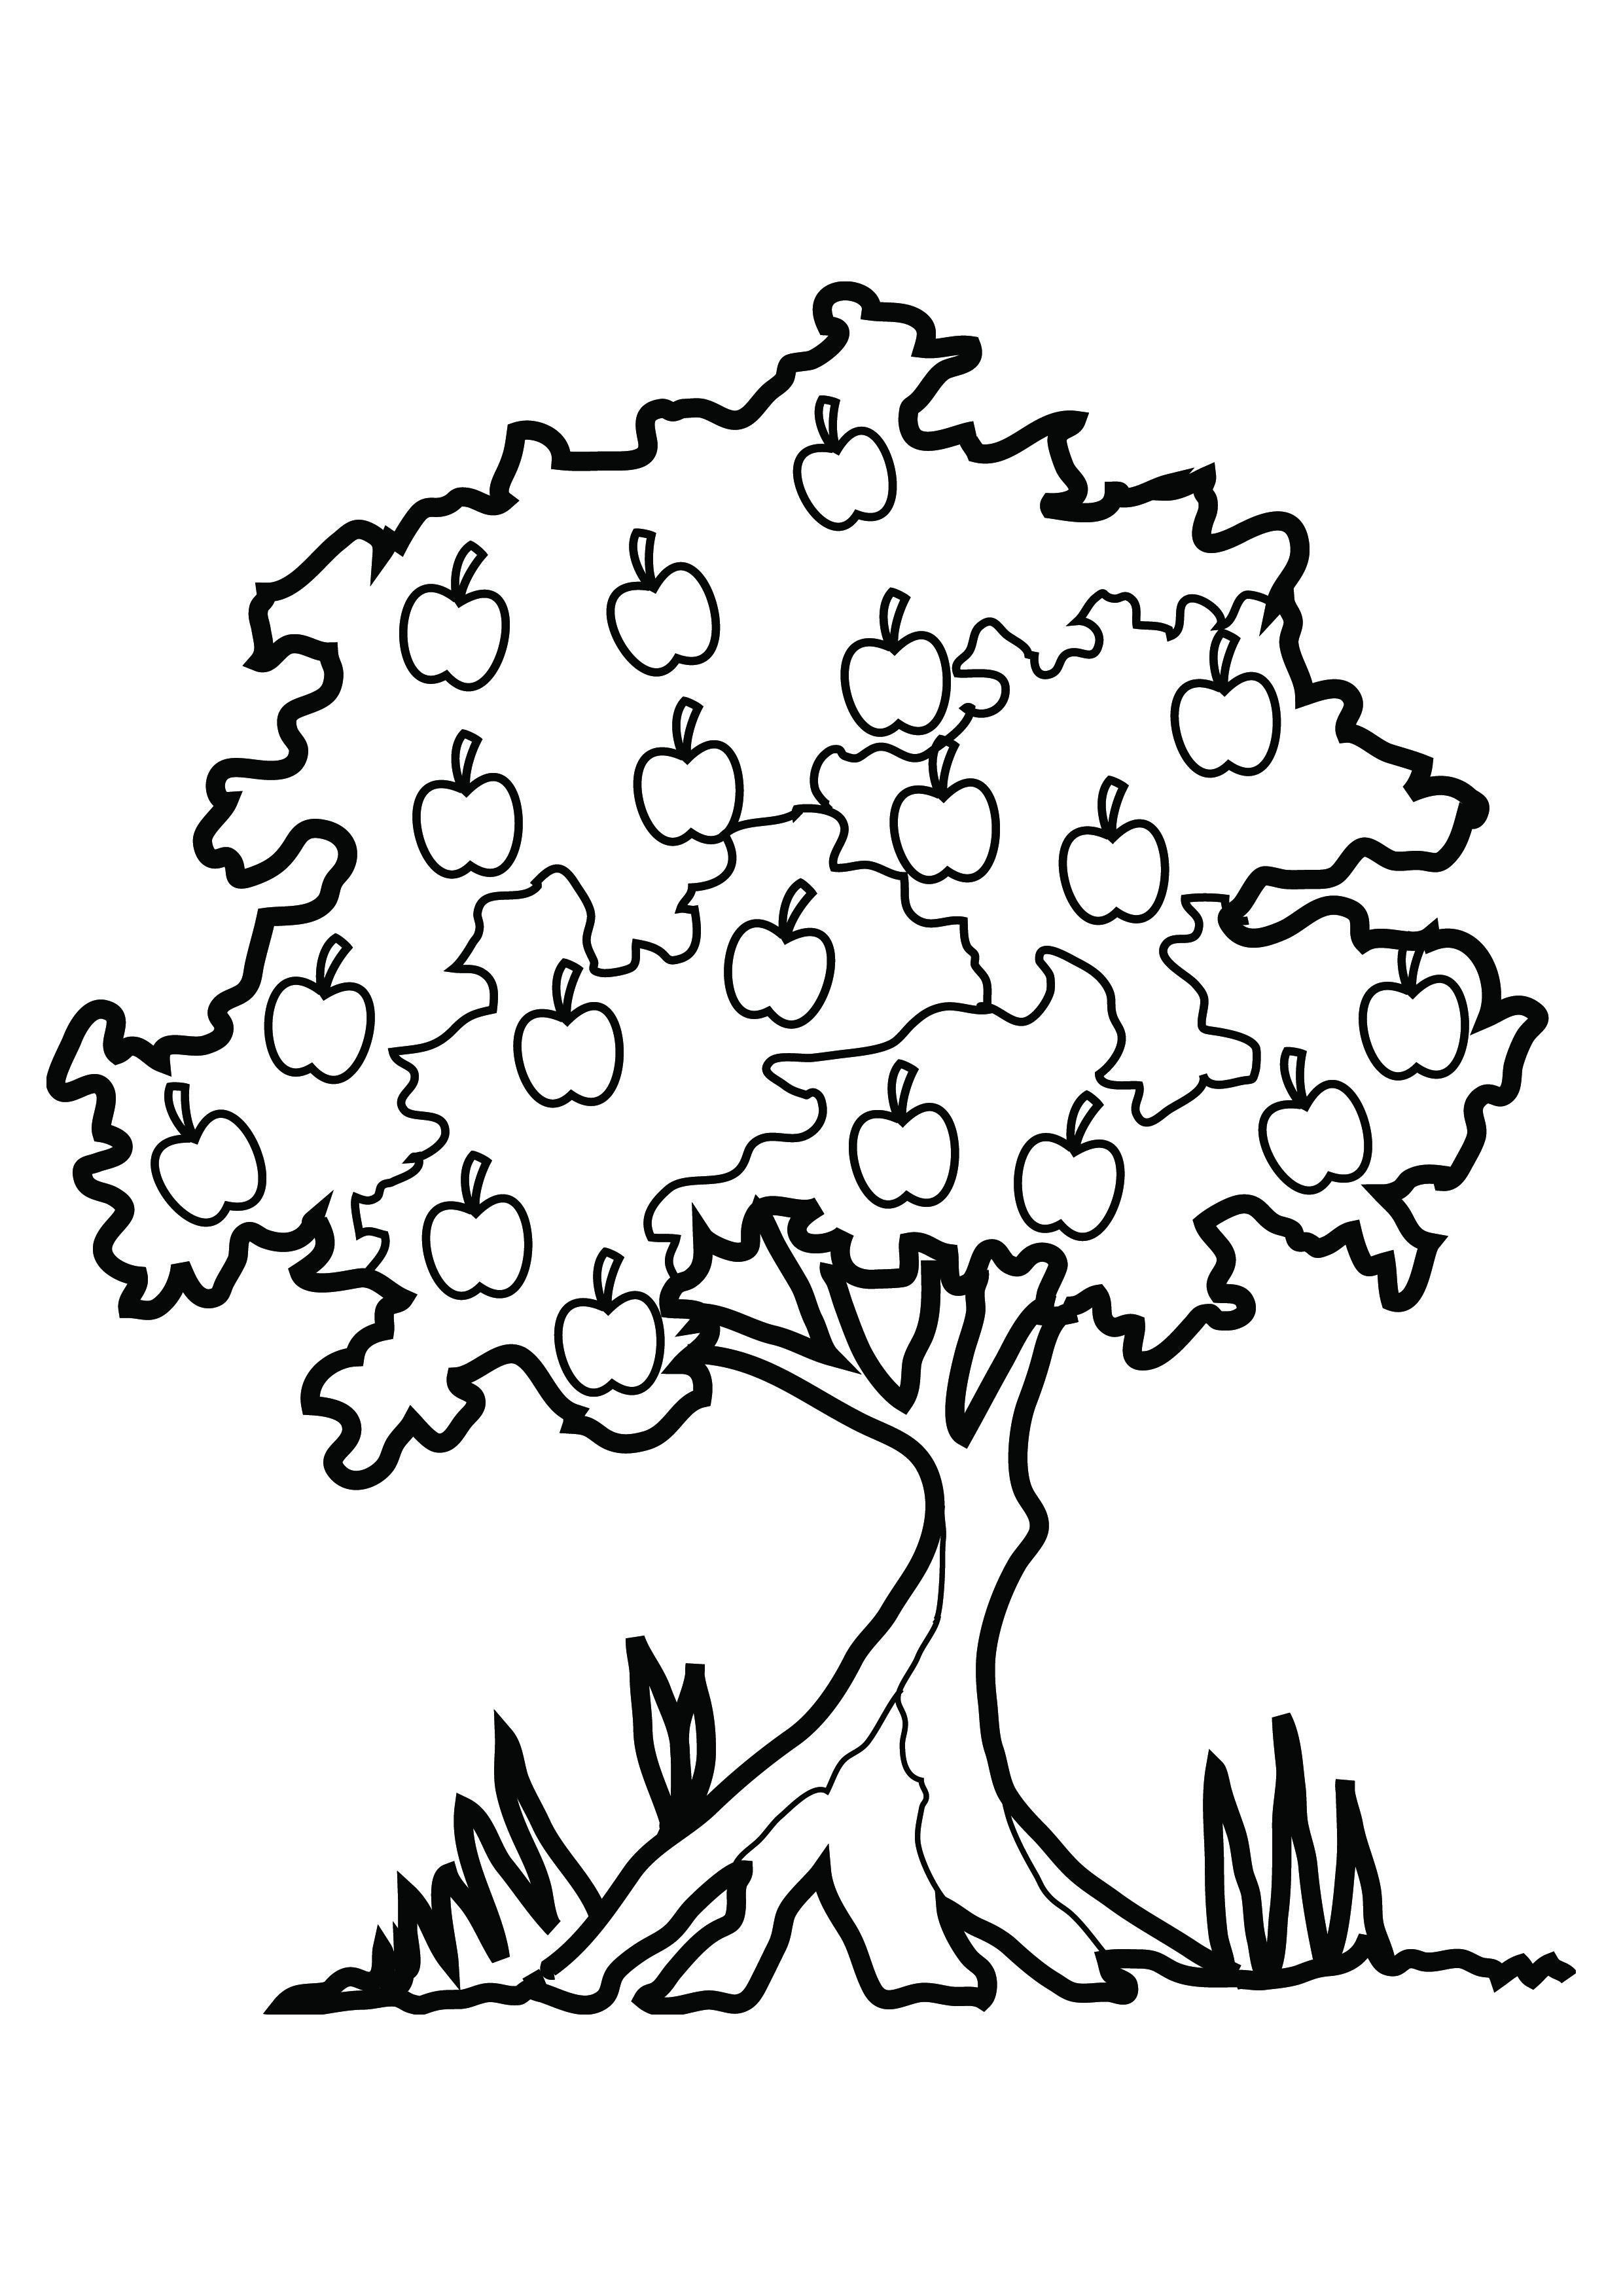 2480x3508 Tree Coloring Pages With Roots Freecolorngpages.co